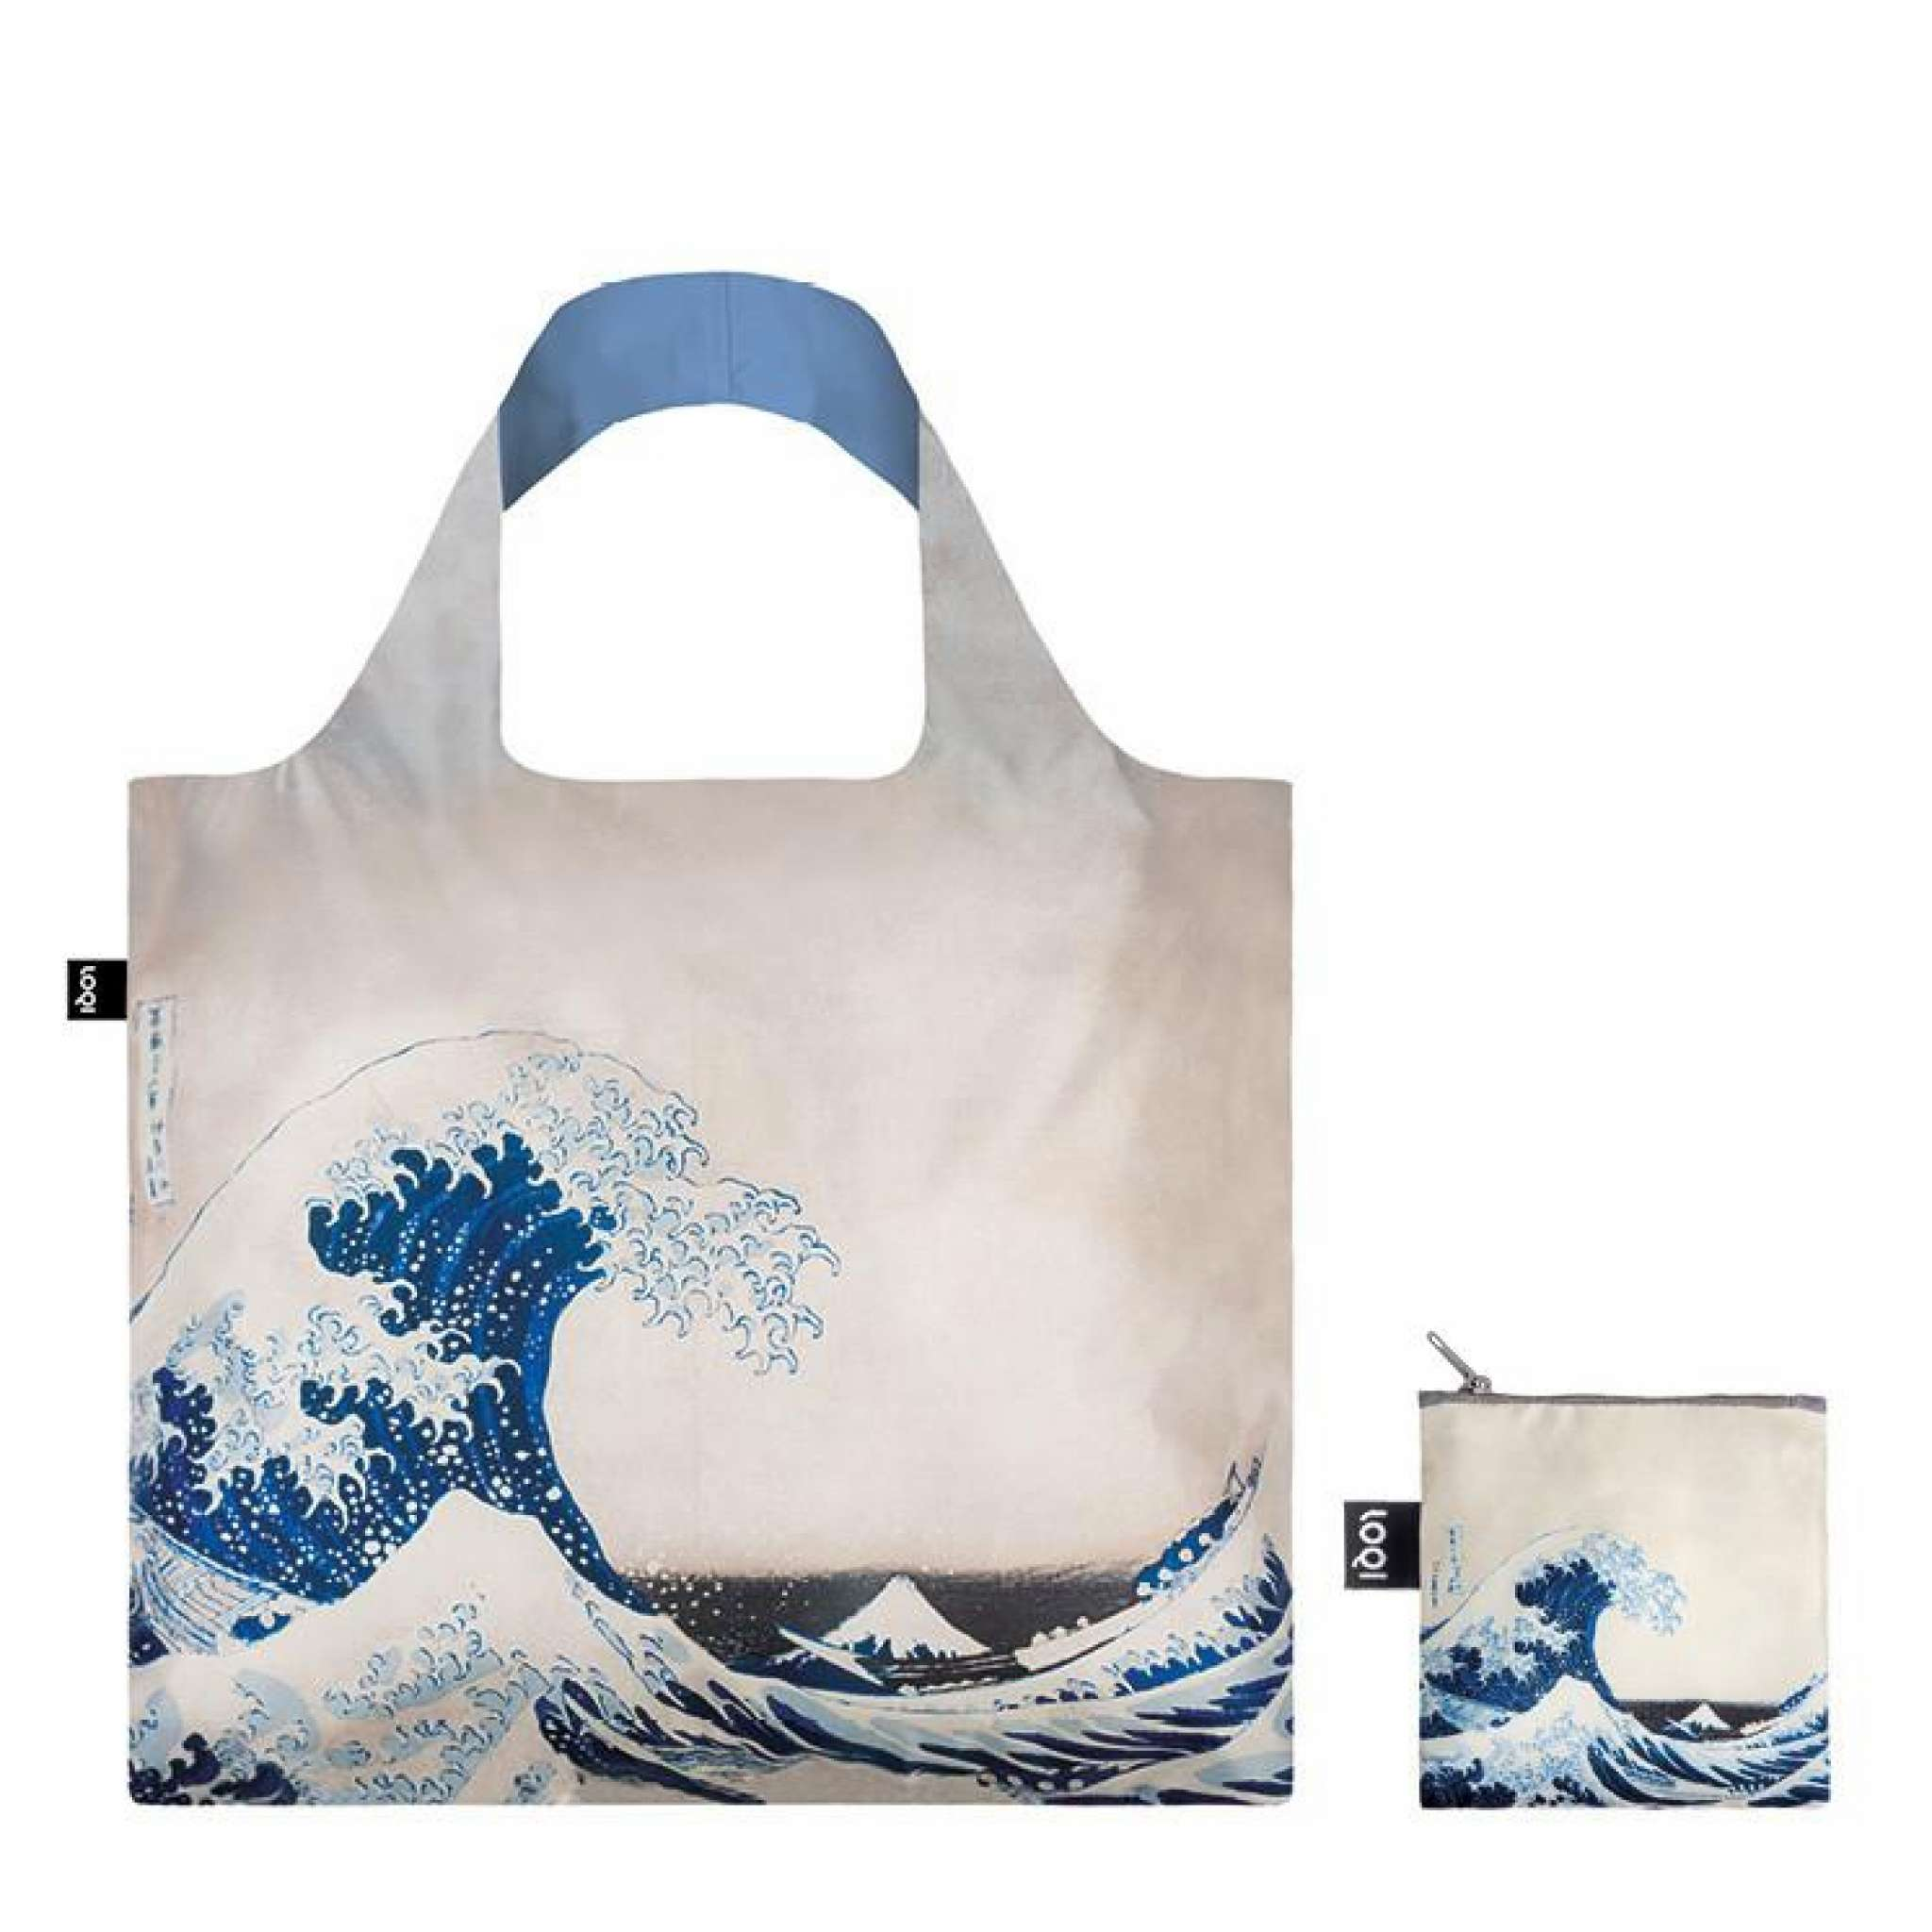 Shoppingbag, HOKUSAI The Great Wave